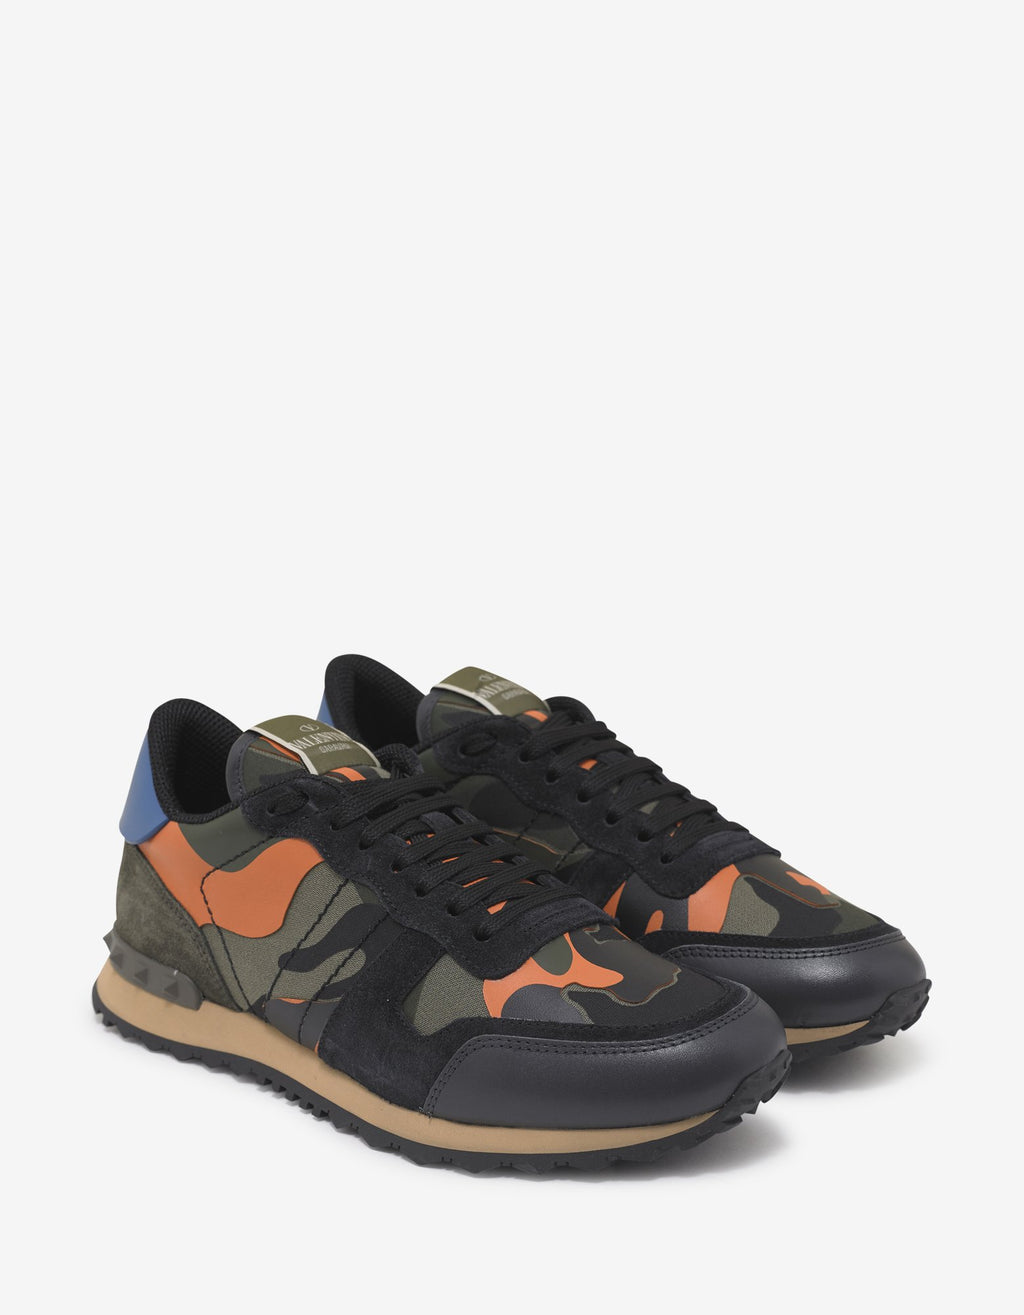 Orange & Green Camo Rockrunner Trainers -